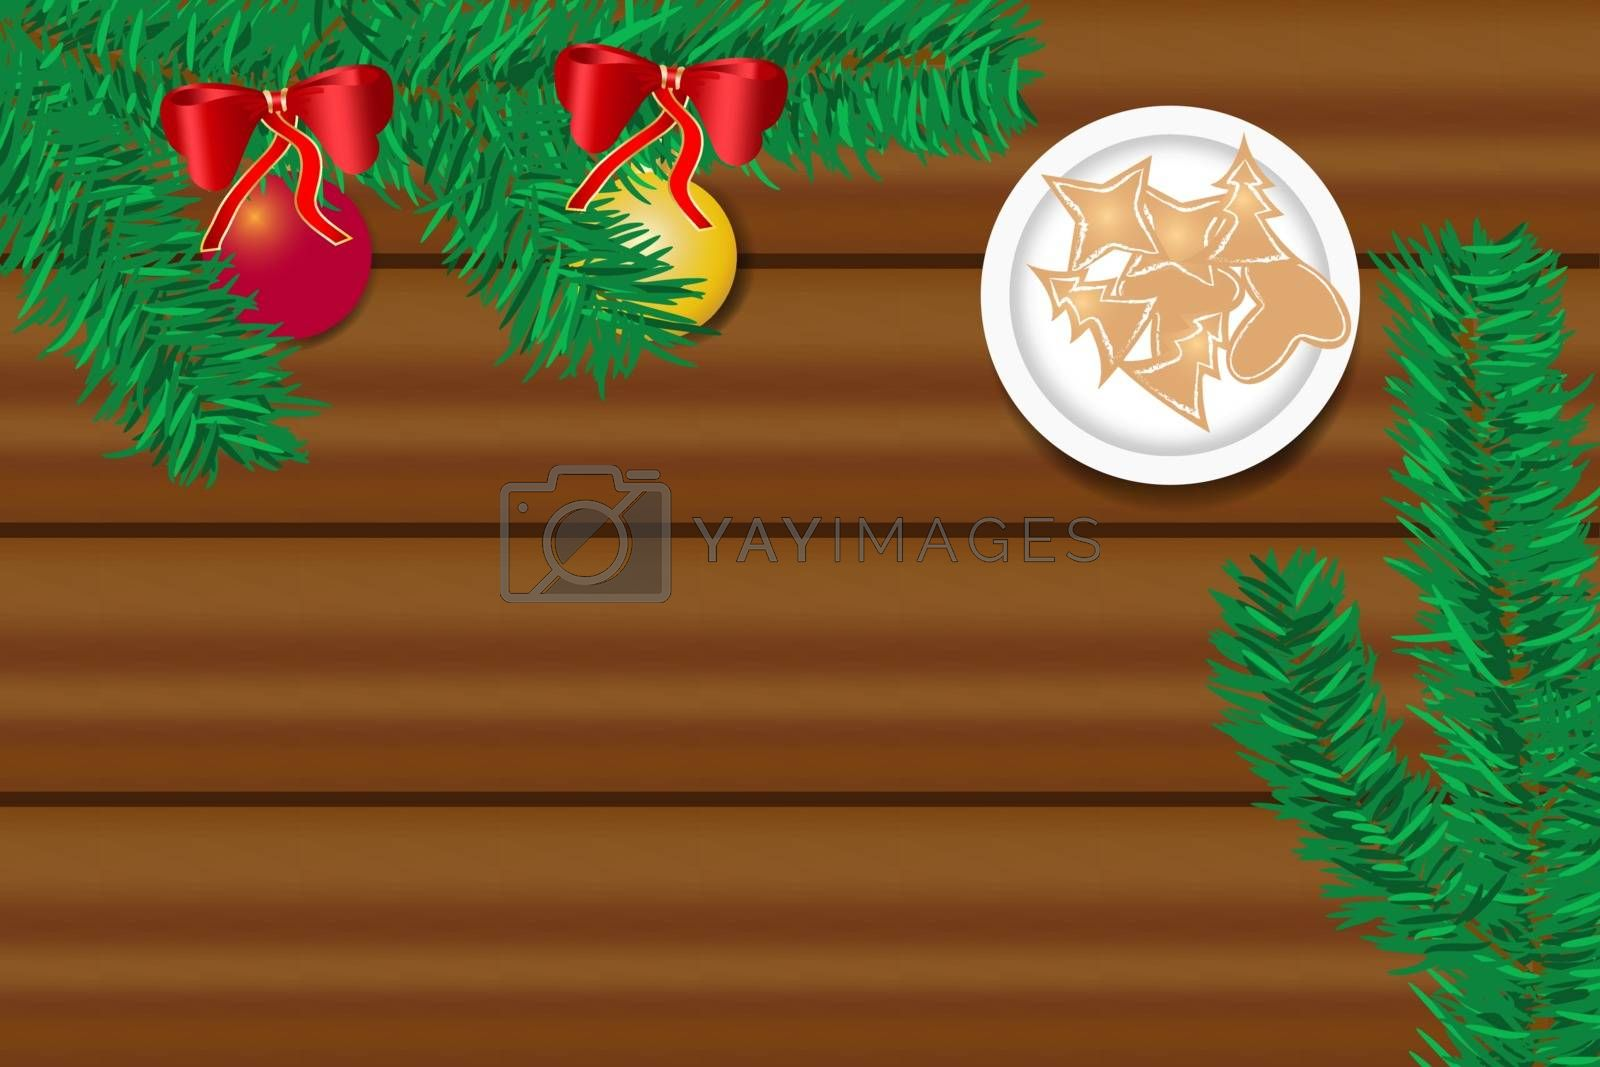 The wooden desk with twig of Christmas tree and Christmas sweets by Frank11